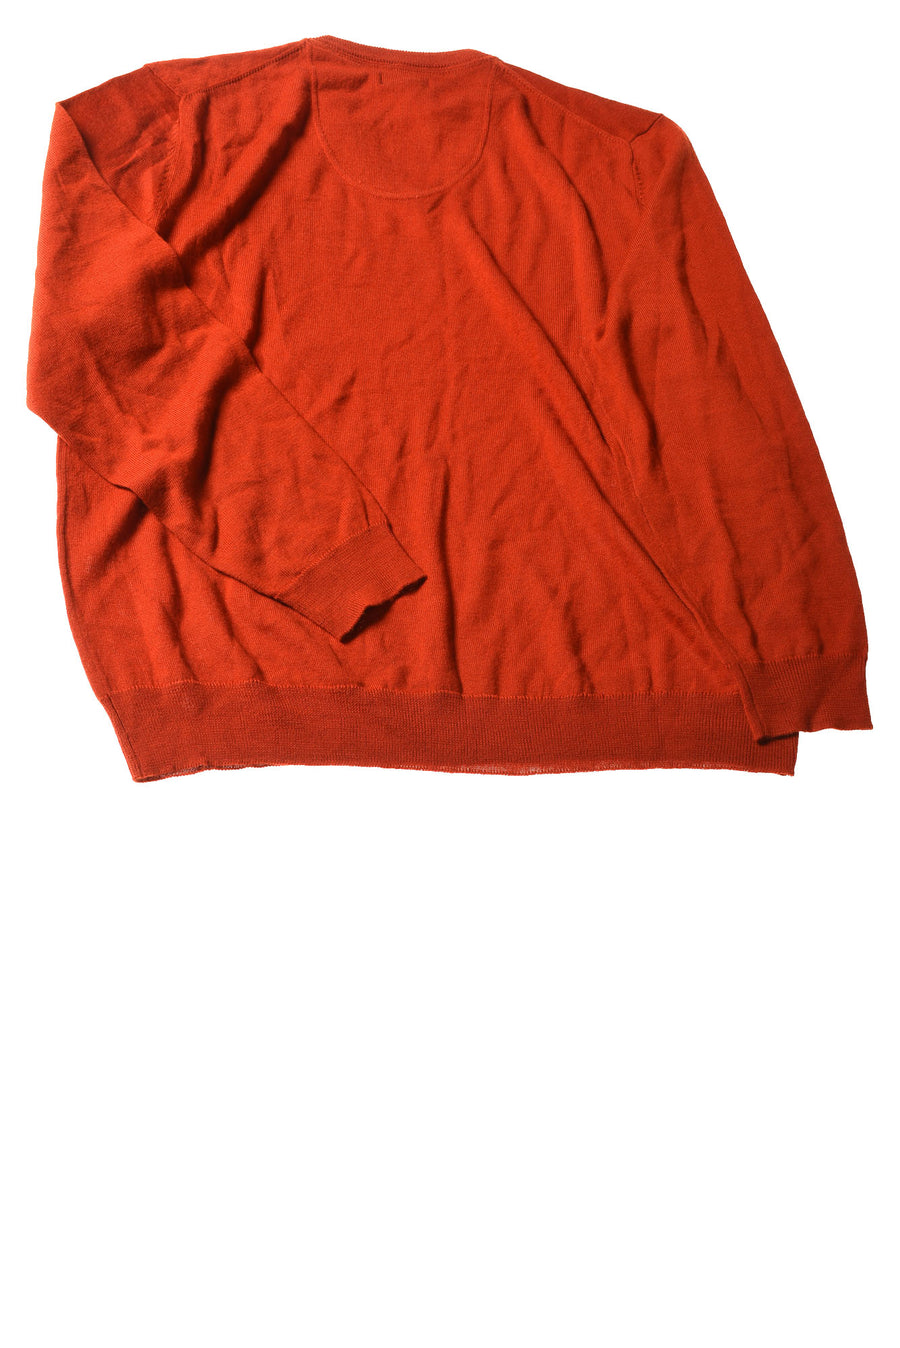 NEW Club Room Men's Sweater X-Large Royal Orange